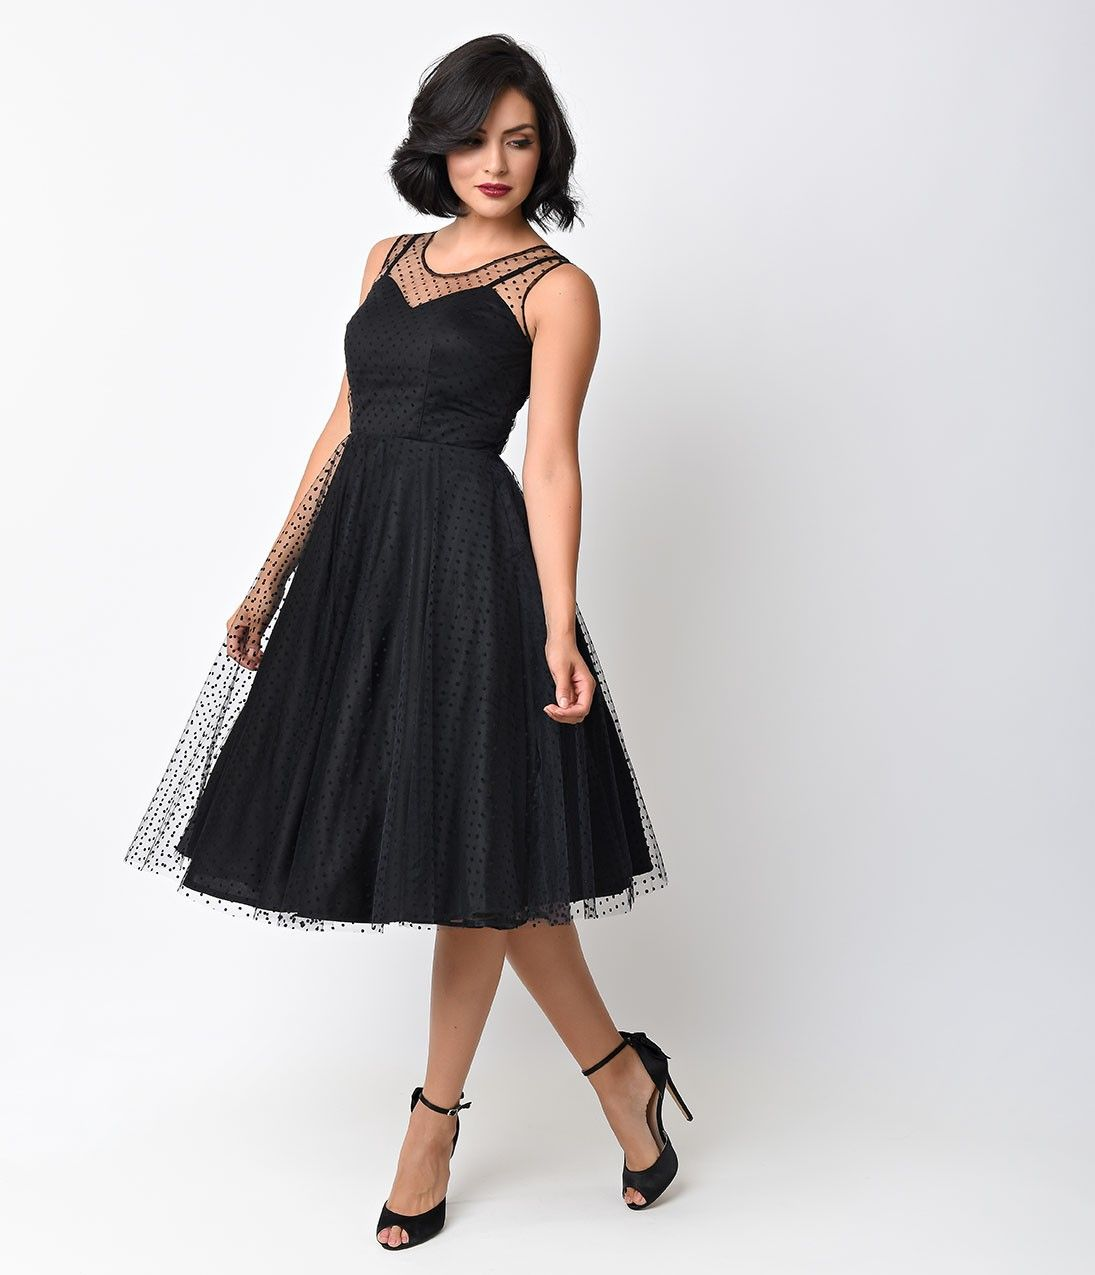 Unique Vintage 1950s Style Black Dot High Society Swing Dress | 50s ...